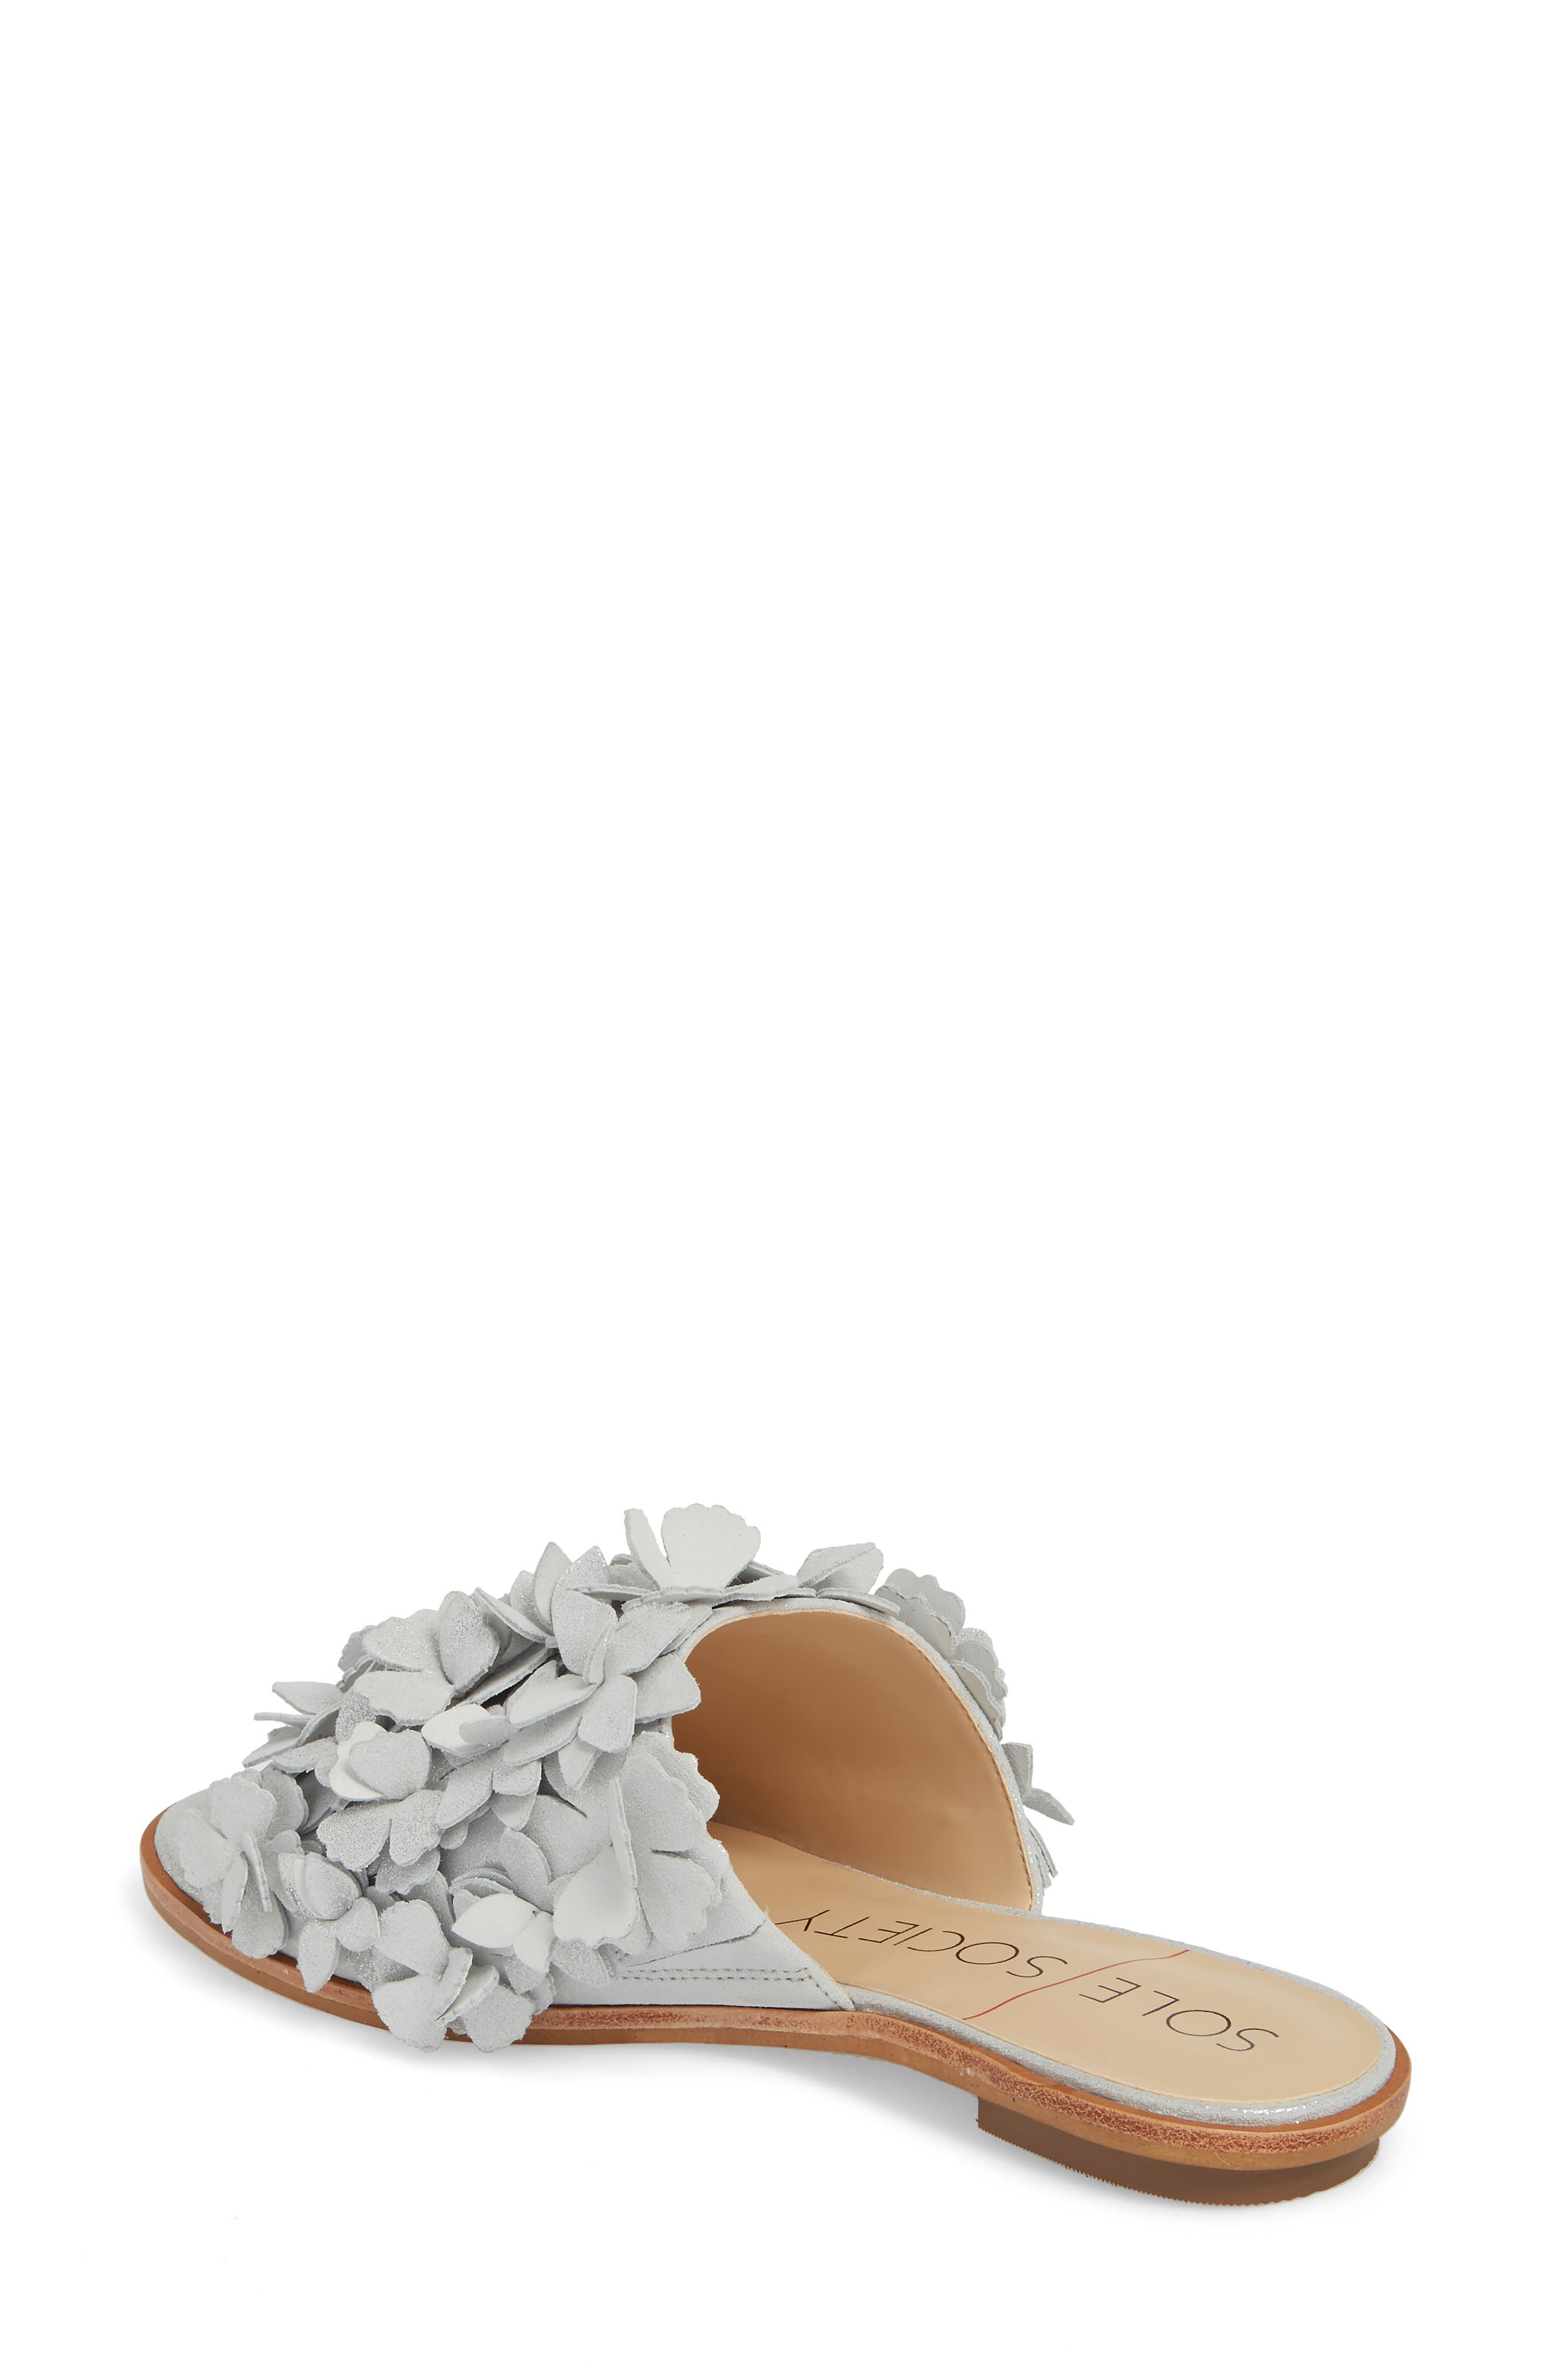 Caelyn Embellished Flat Sandal,                             Alternate thumbnail 2, color,                             Dusted Silver